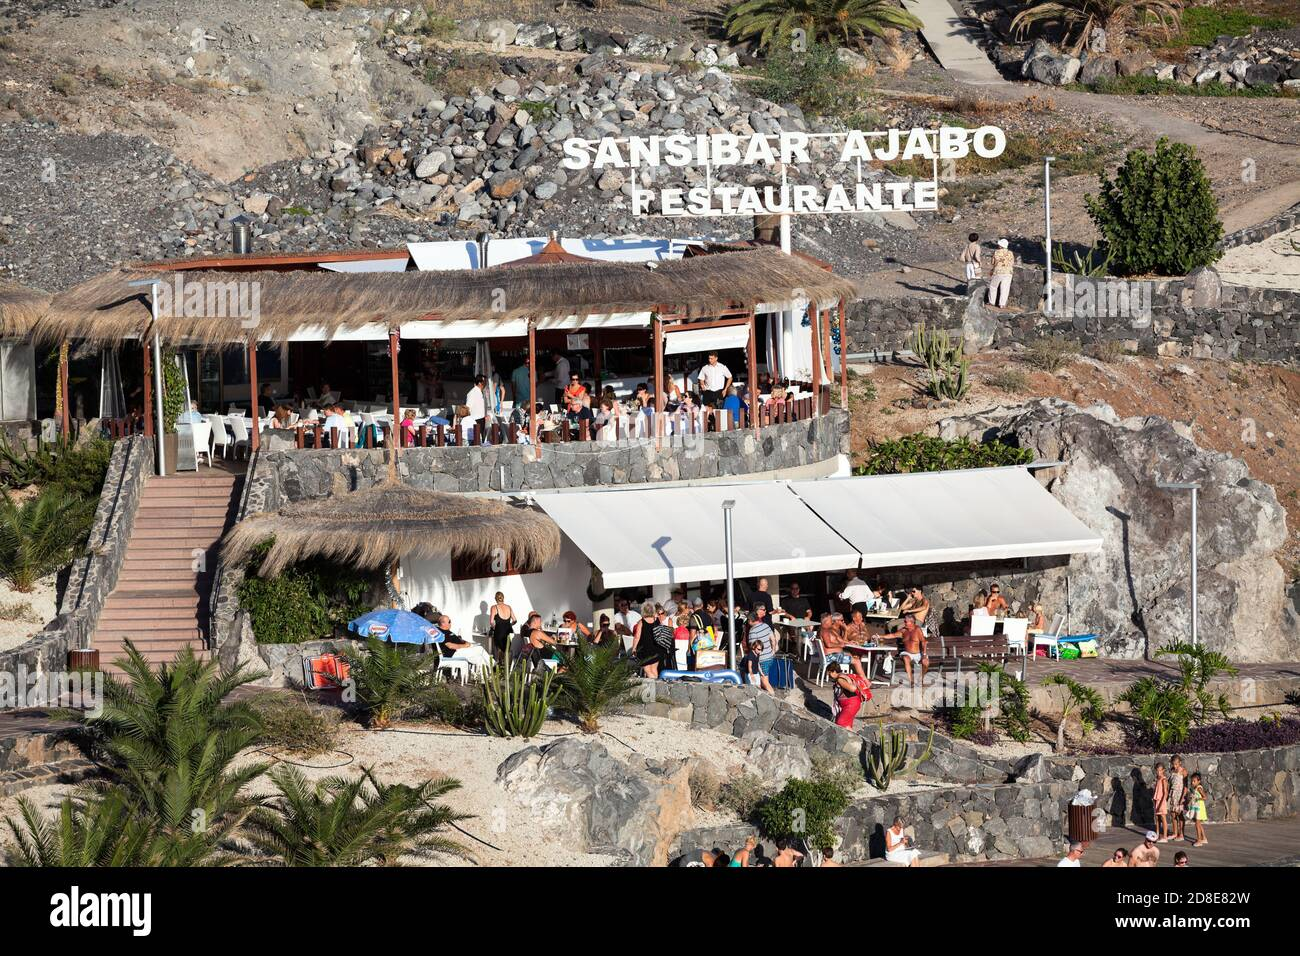 Callao Salvaje High Resolution Stock Photography And Images Alamy